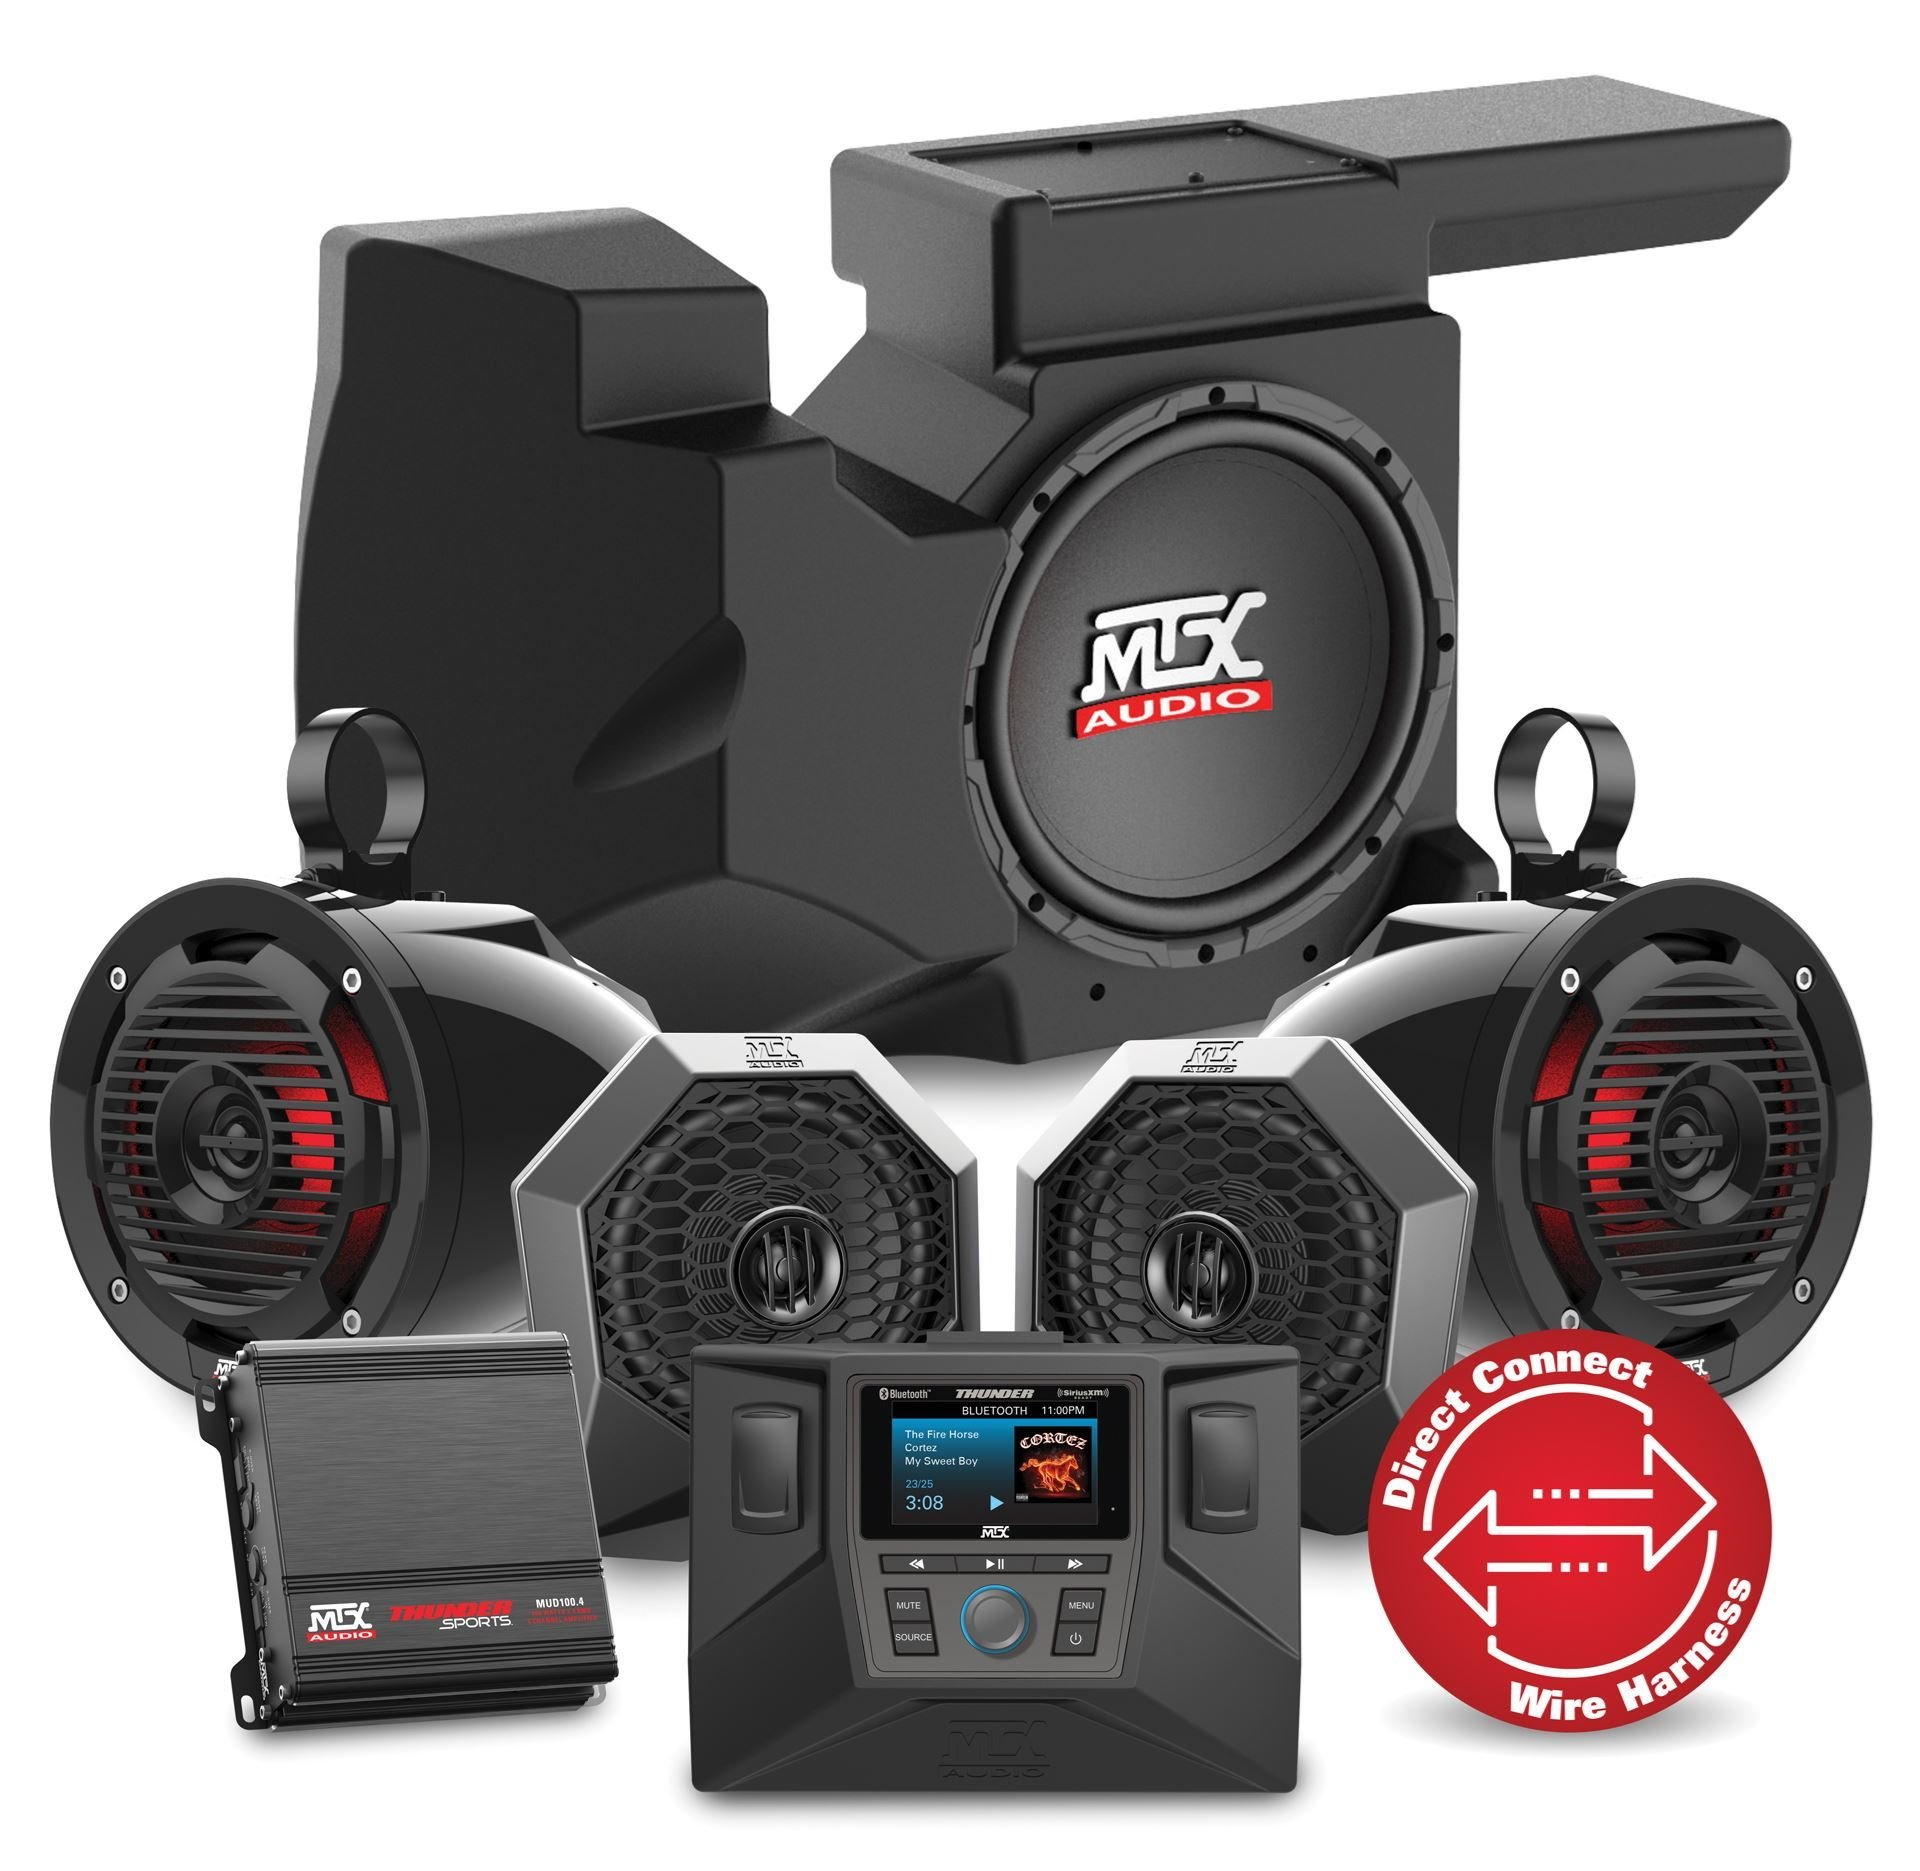 MTX Audio 2014-2018 Polaris RZR XP 1000 Four Speaker, Dual Amplifier, And Single Subwoofer Audio System by RZRSYSTEM3